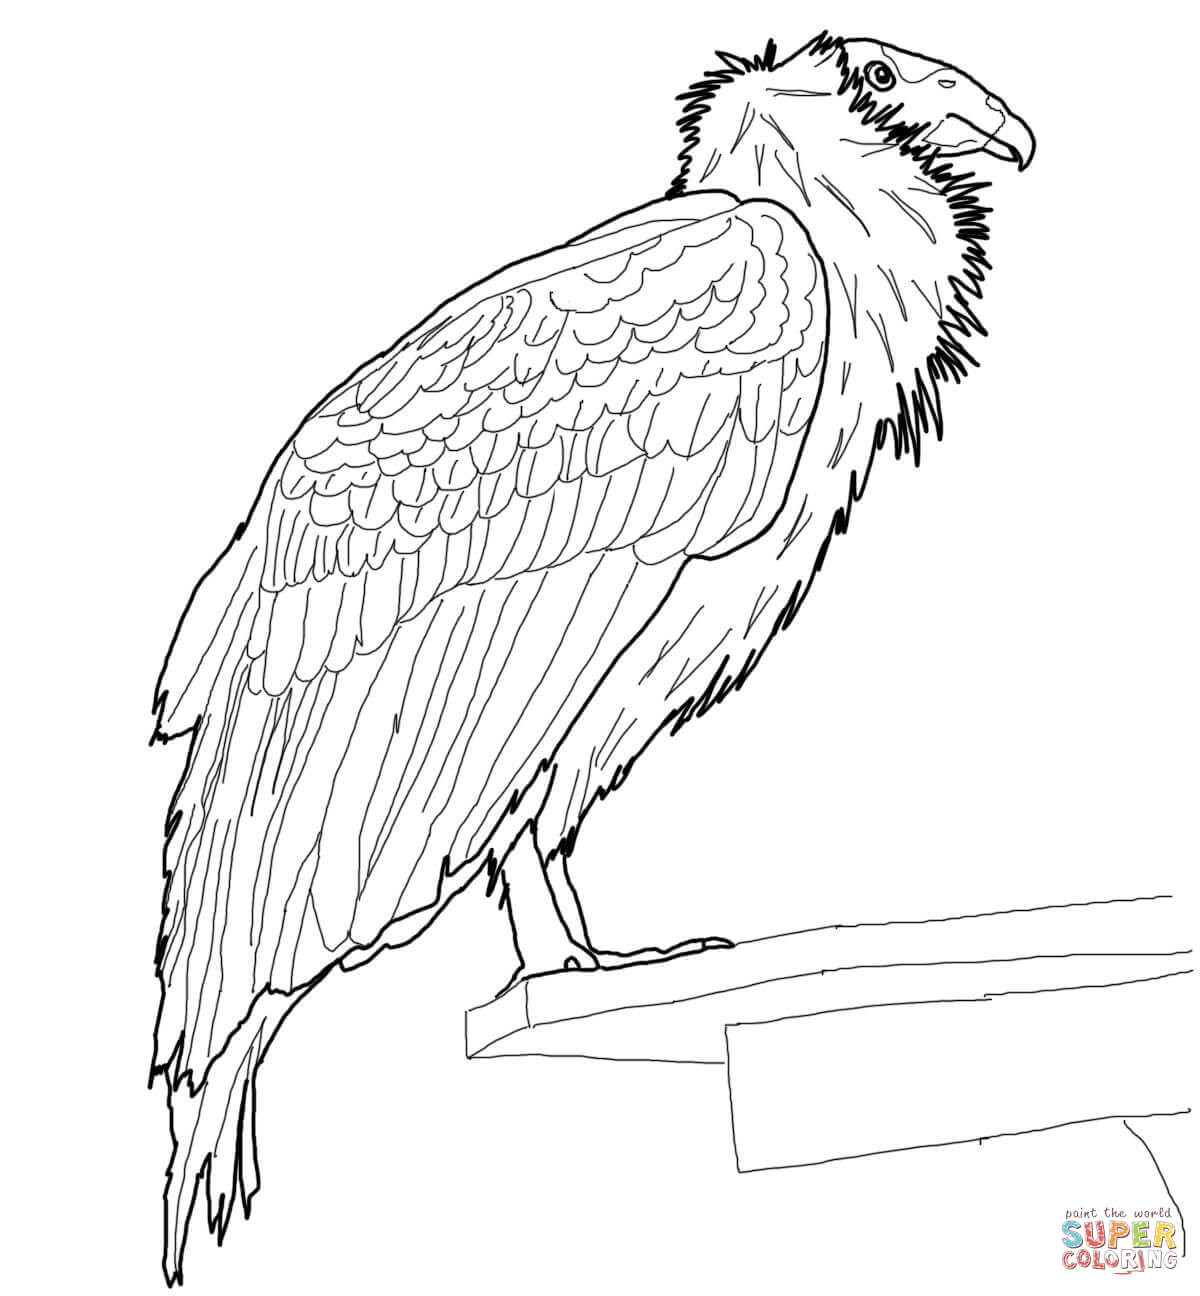 Condor coloring #11, Download drawings